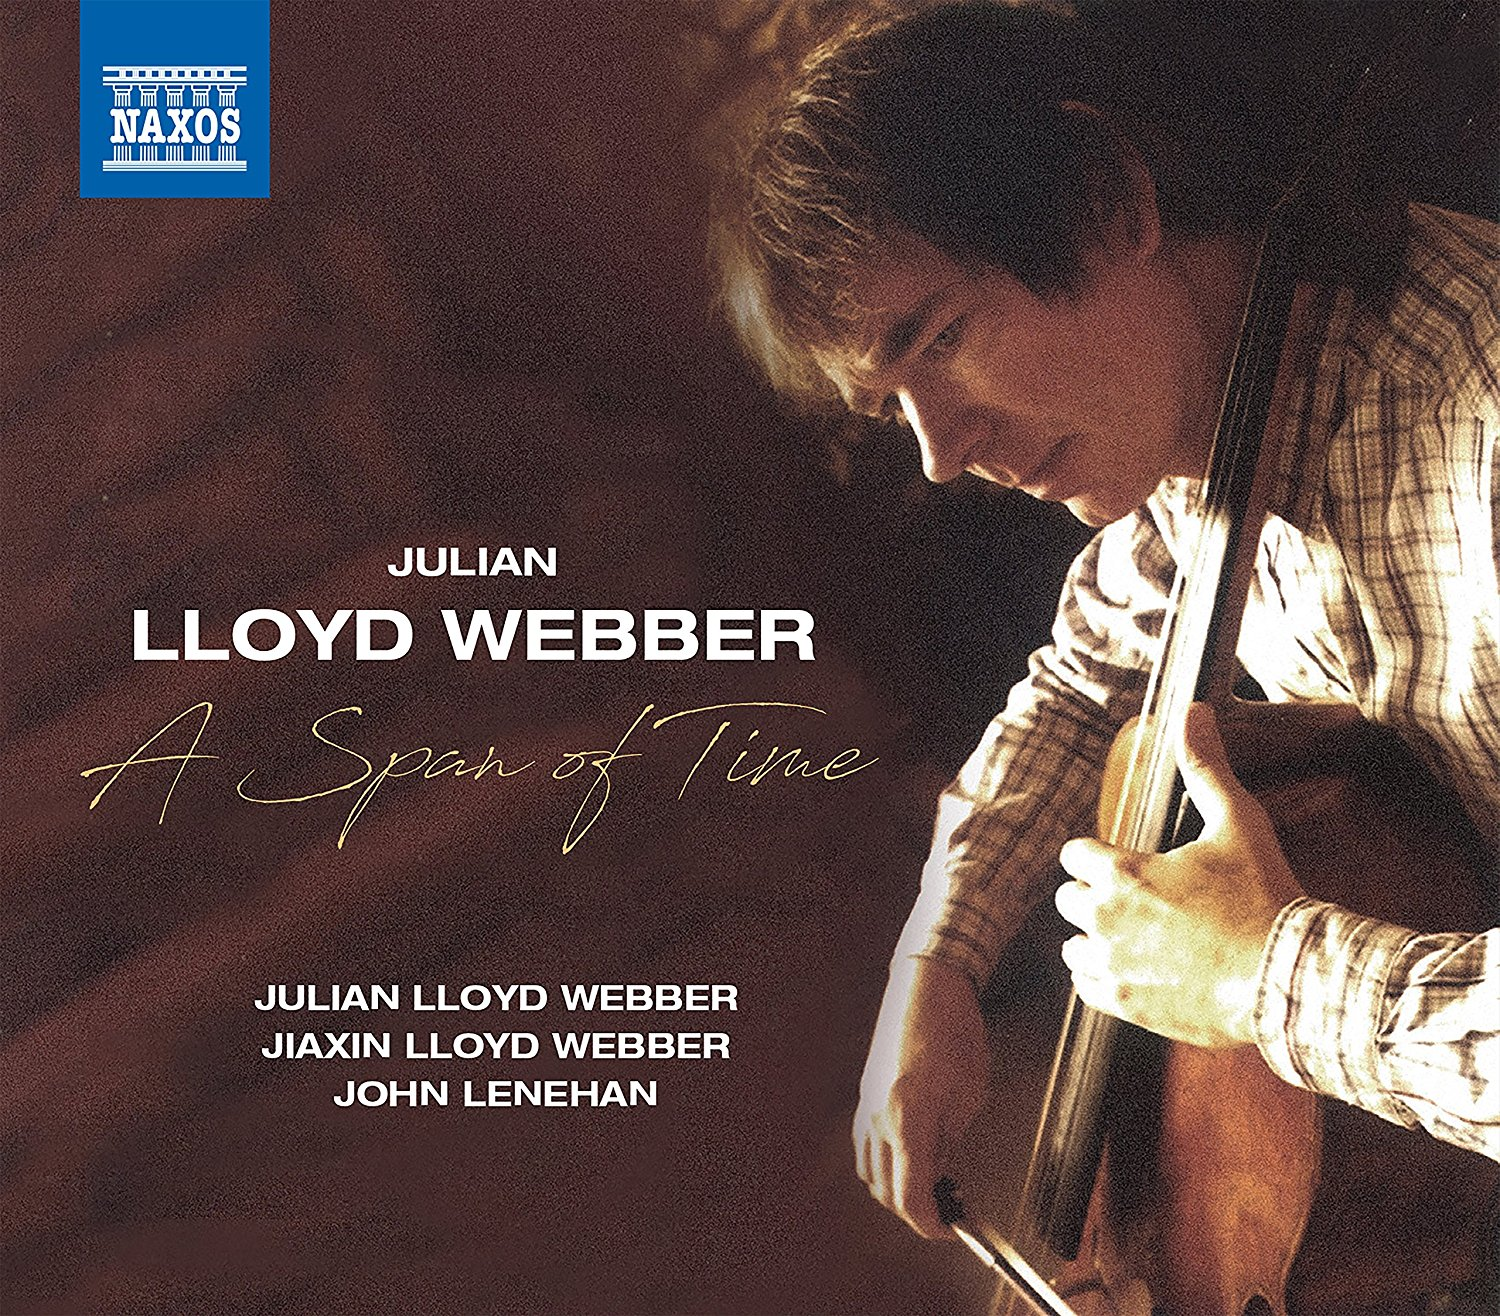 julian lloyd webber span of time